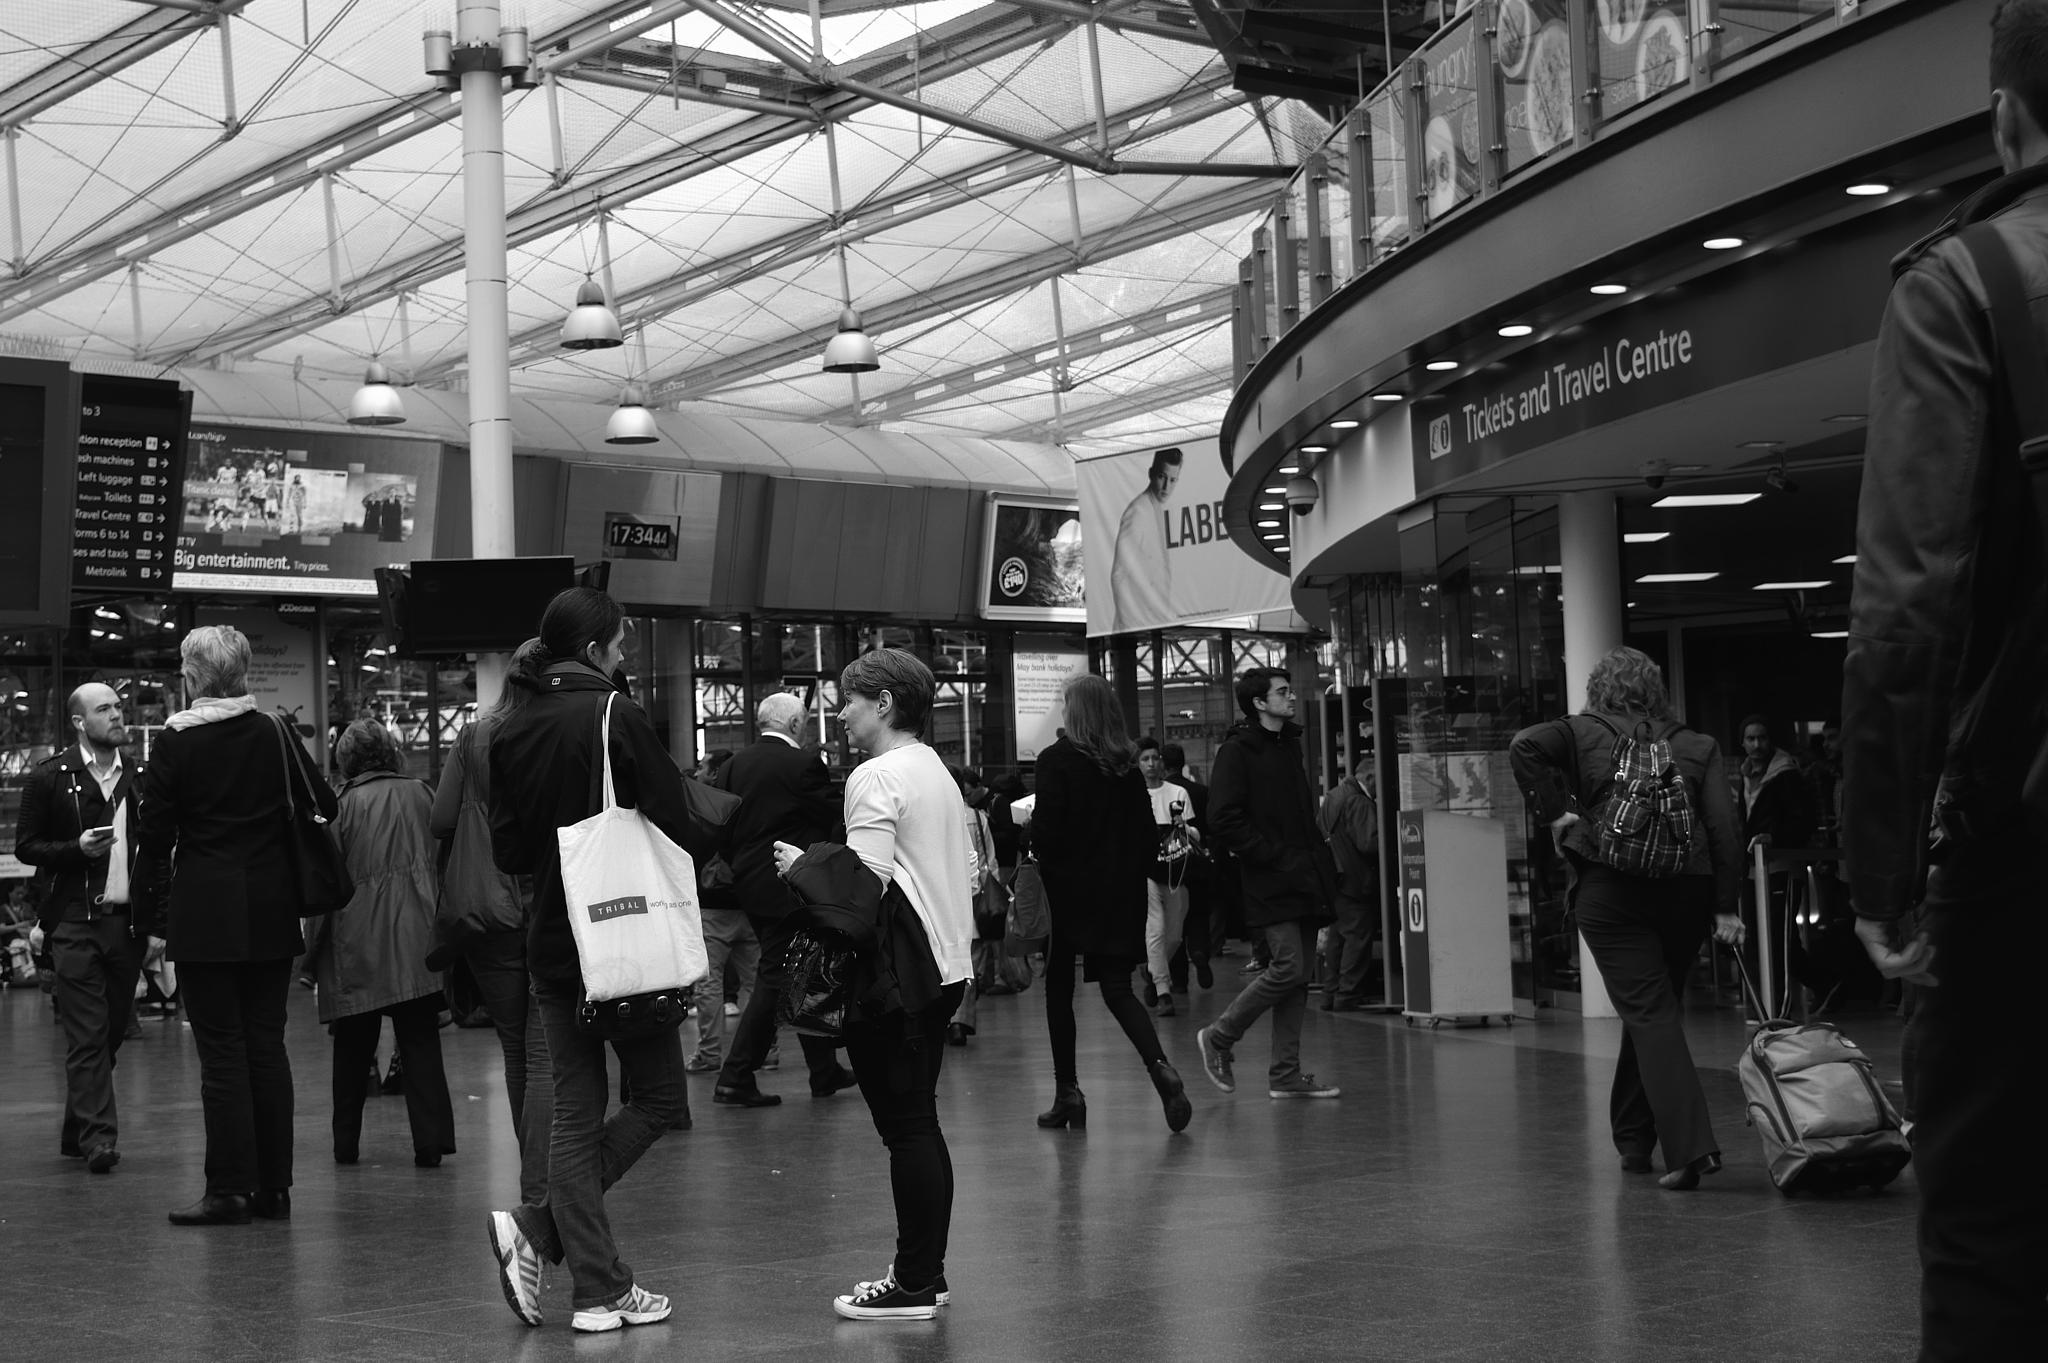 Station Life by Mike Shawcross